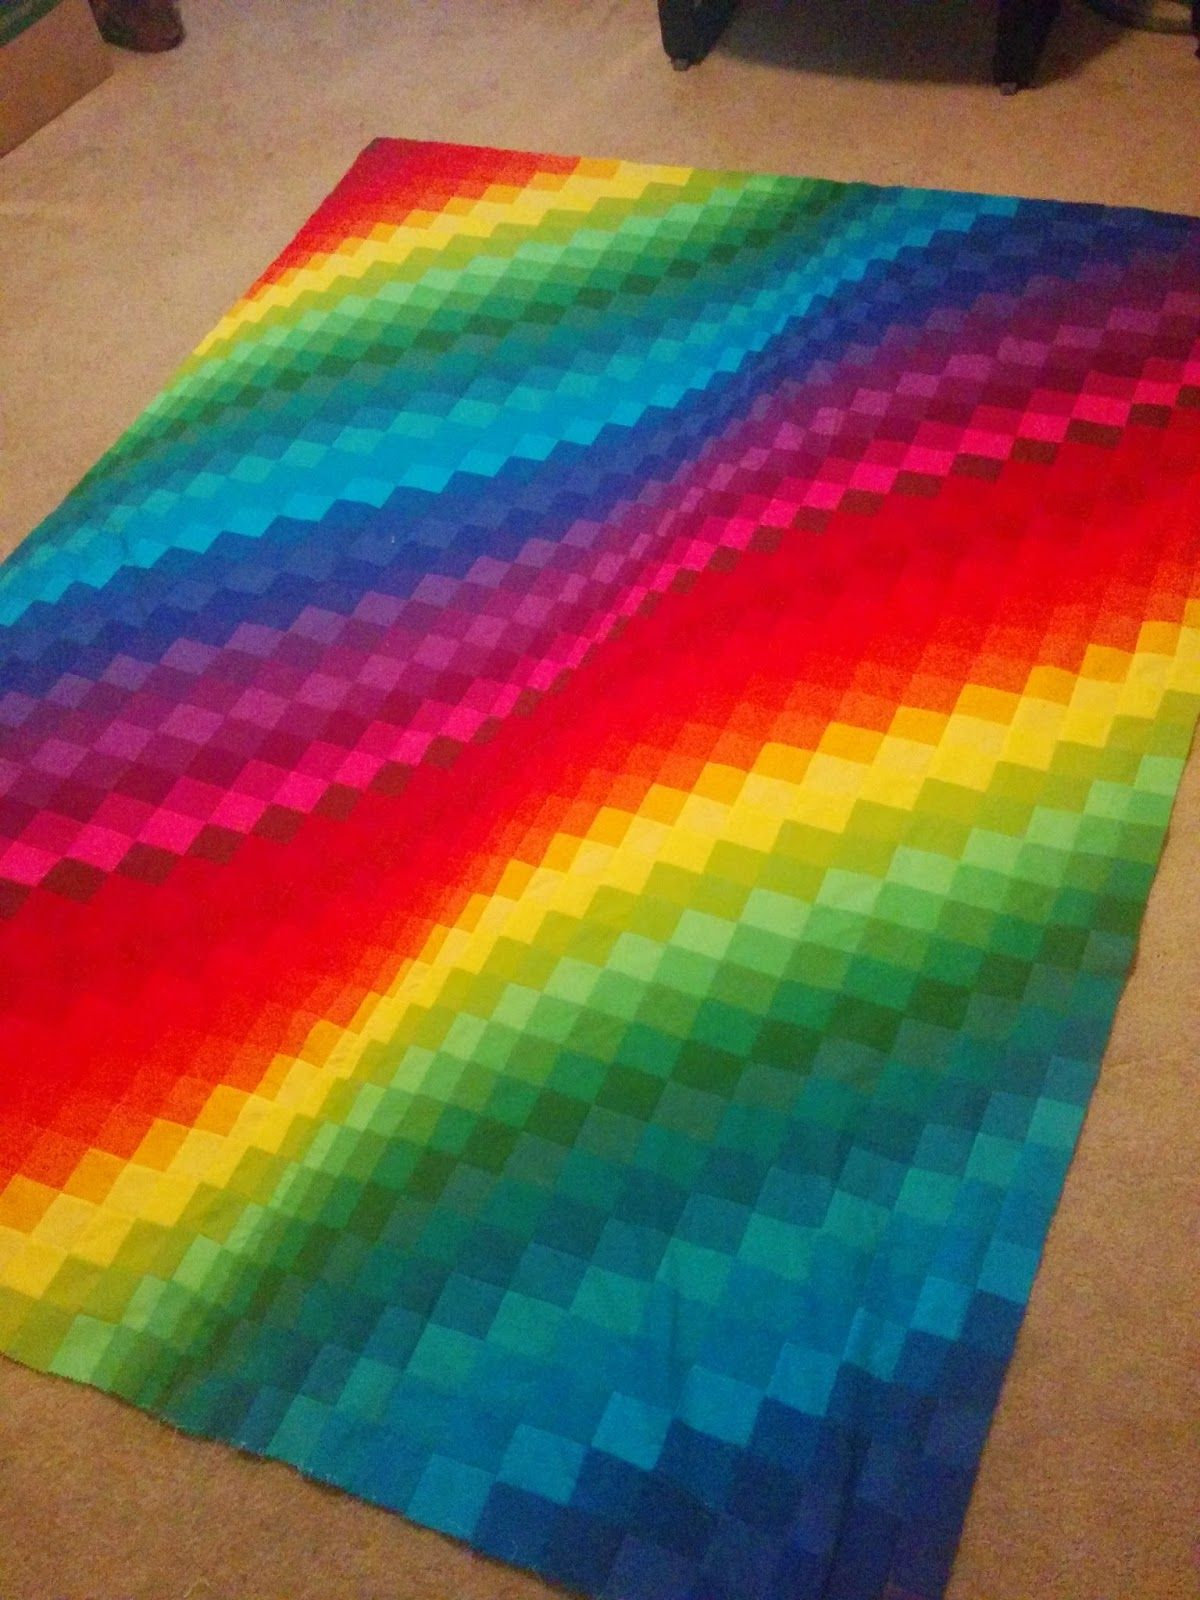 Rainbow Bargello - Jelly Roll Kona Roll Up Classic                                                                                                                                                      Mehr